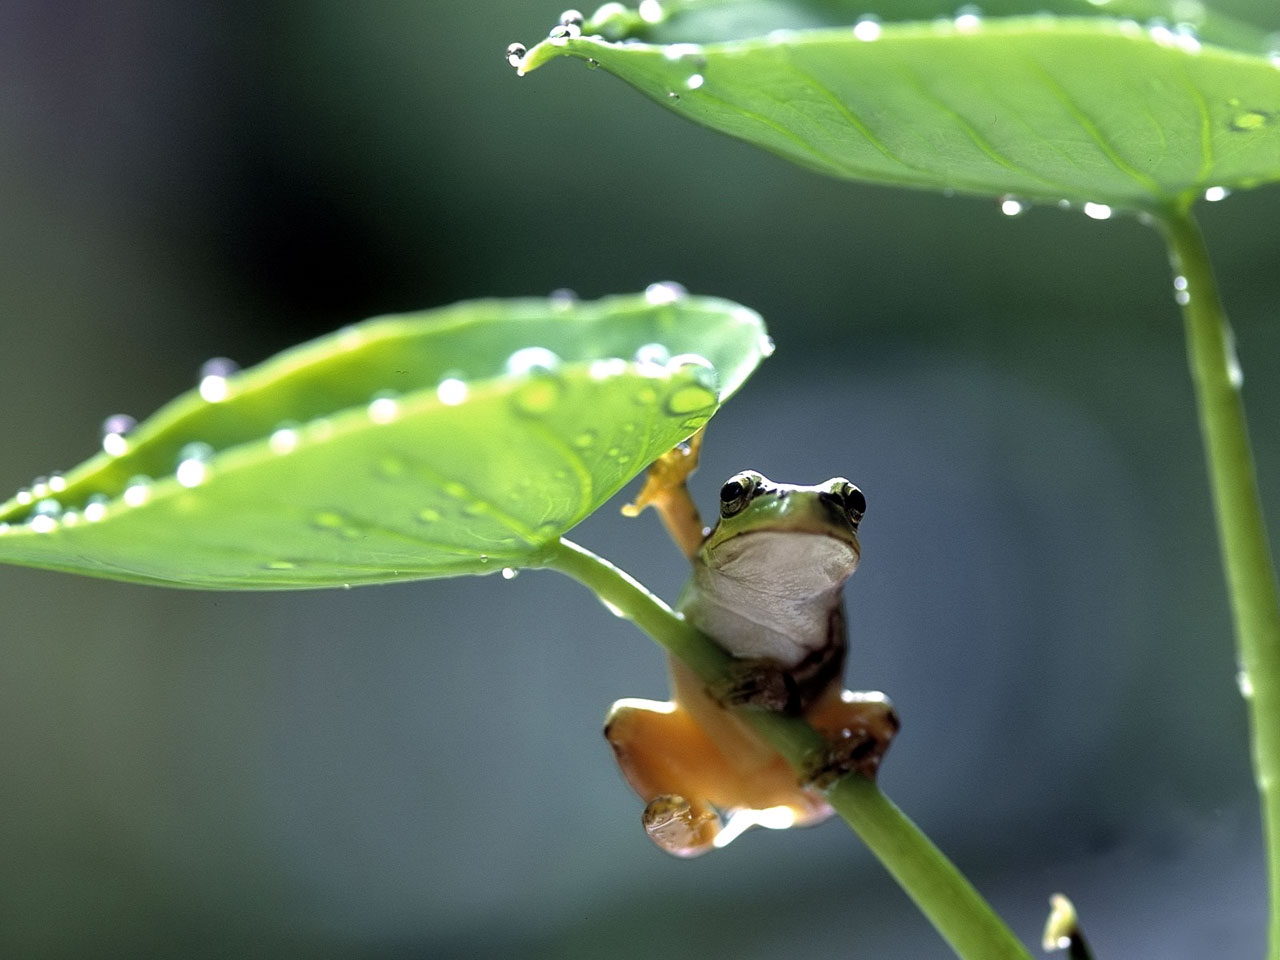 frog-on-a-leaf-wallpaper-wp4407259